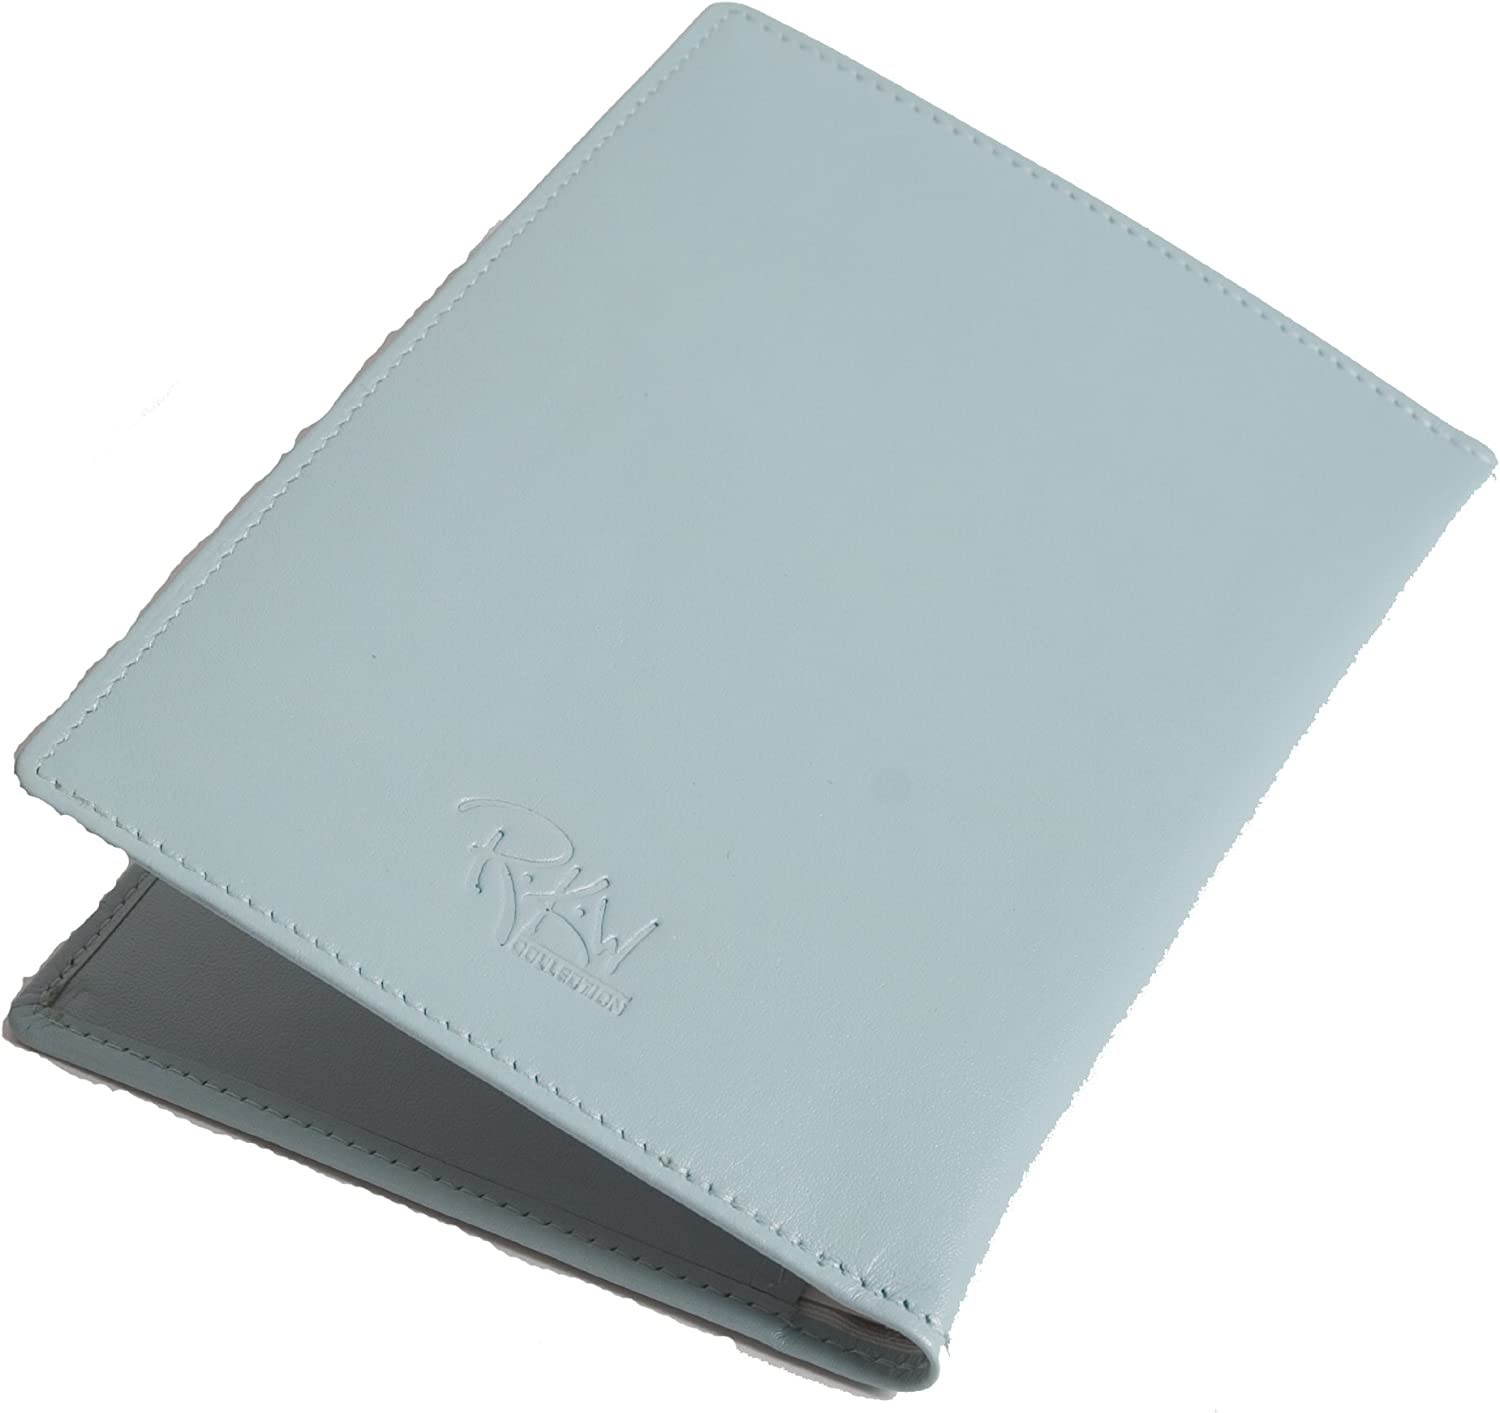 Pale Blue Leather Passport Cover